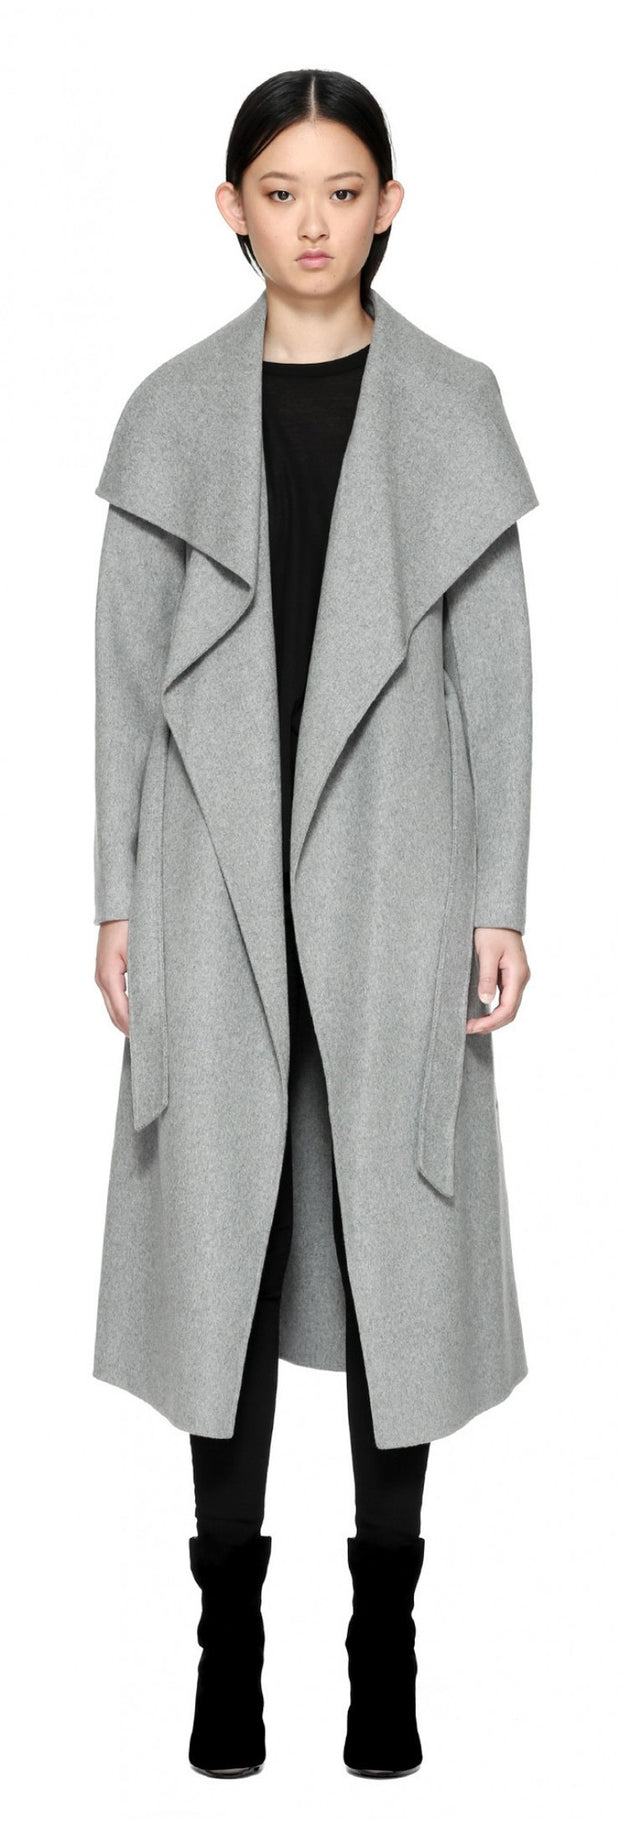 Mackage Mackage- Mai Long Coat + belted waist Light Grey at Blond Genius - 2